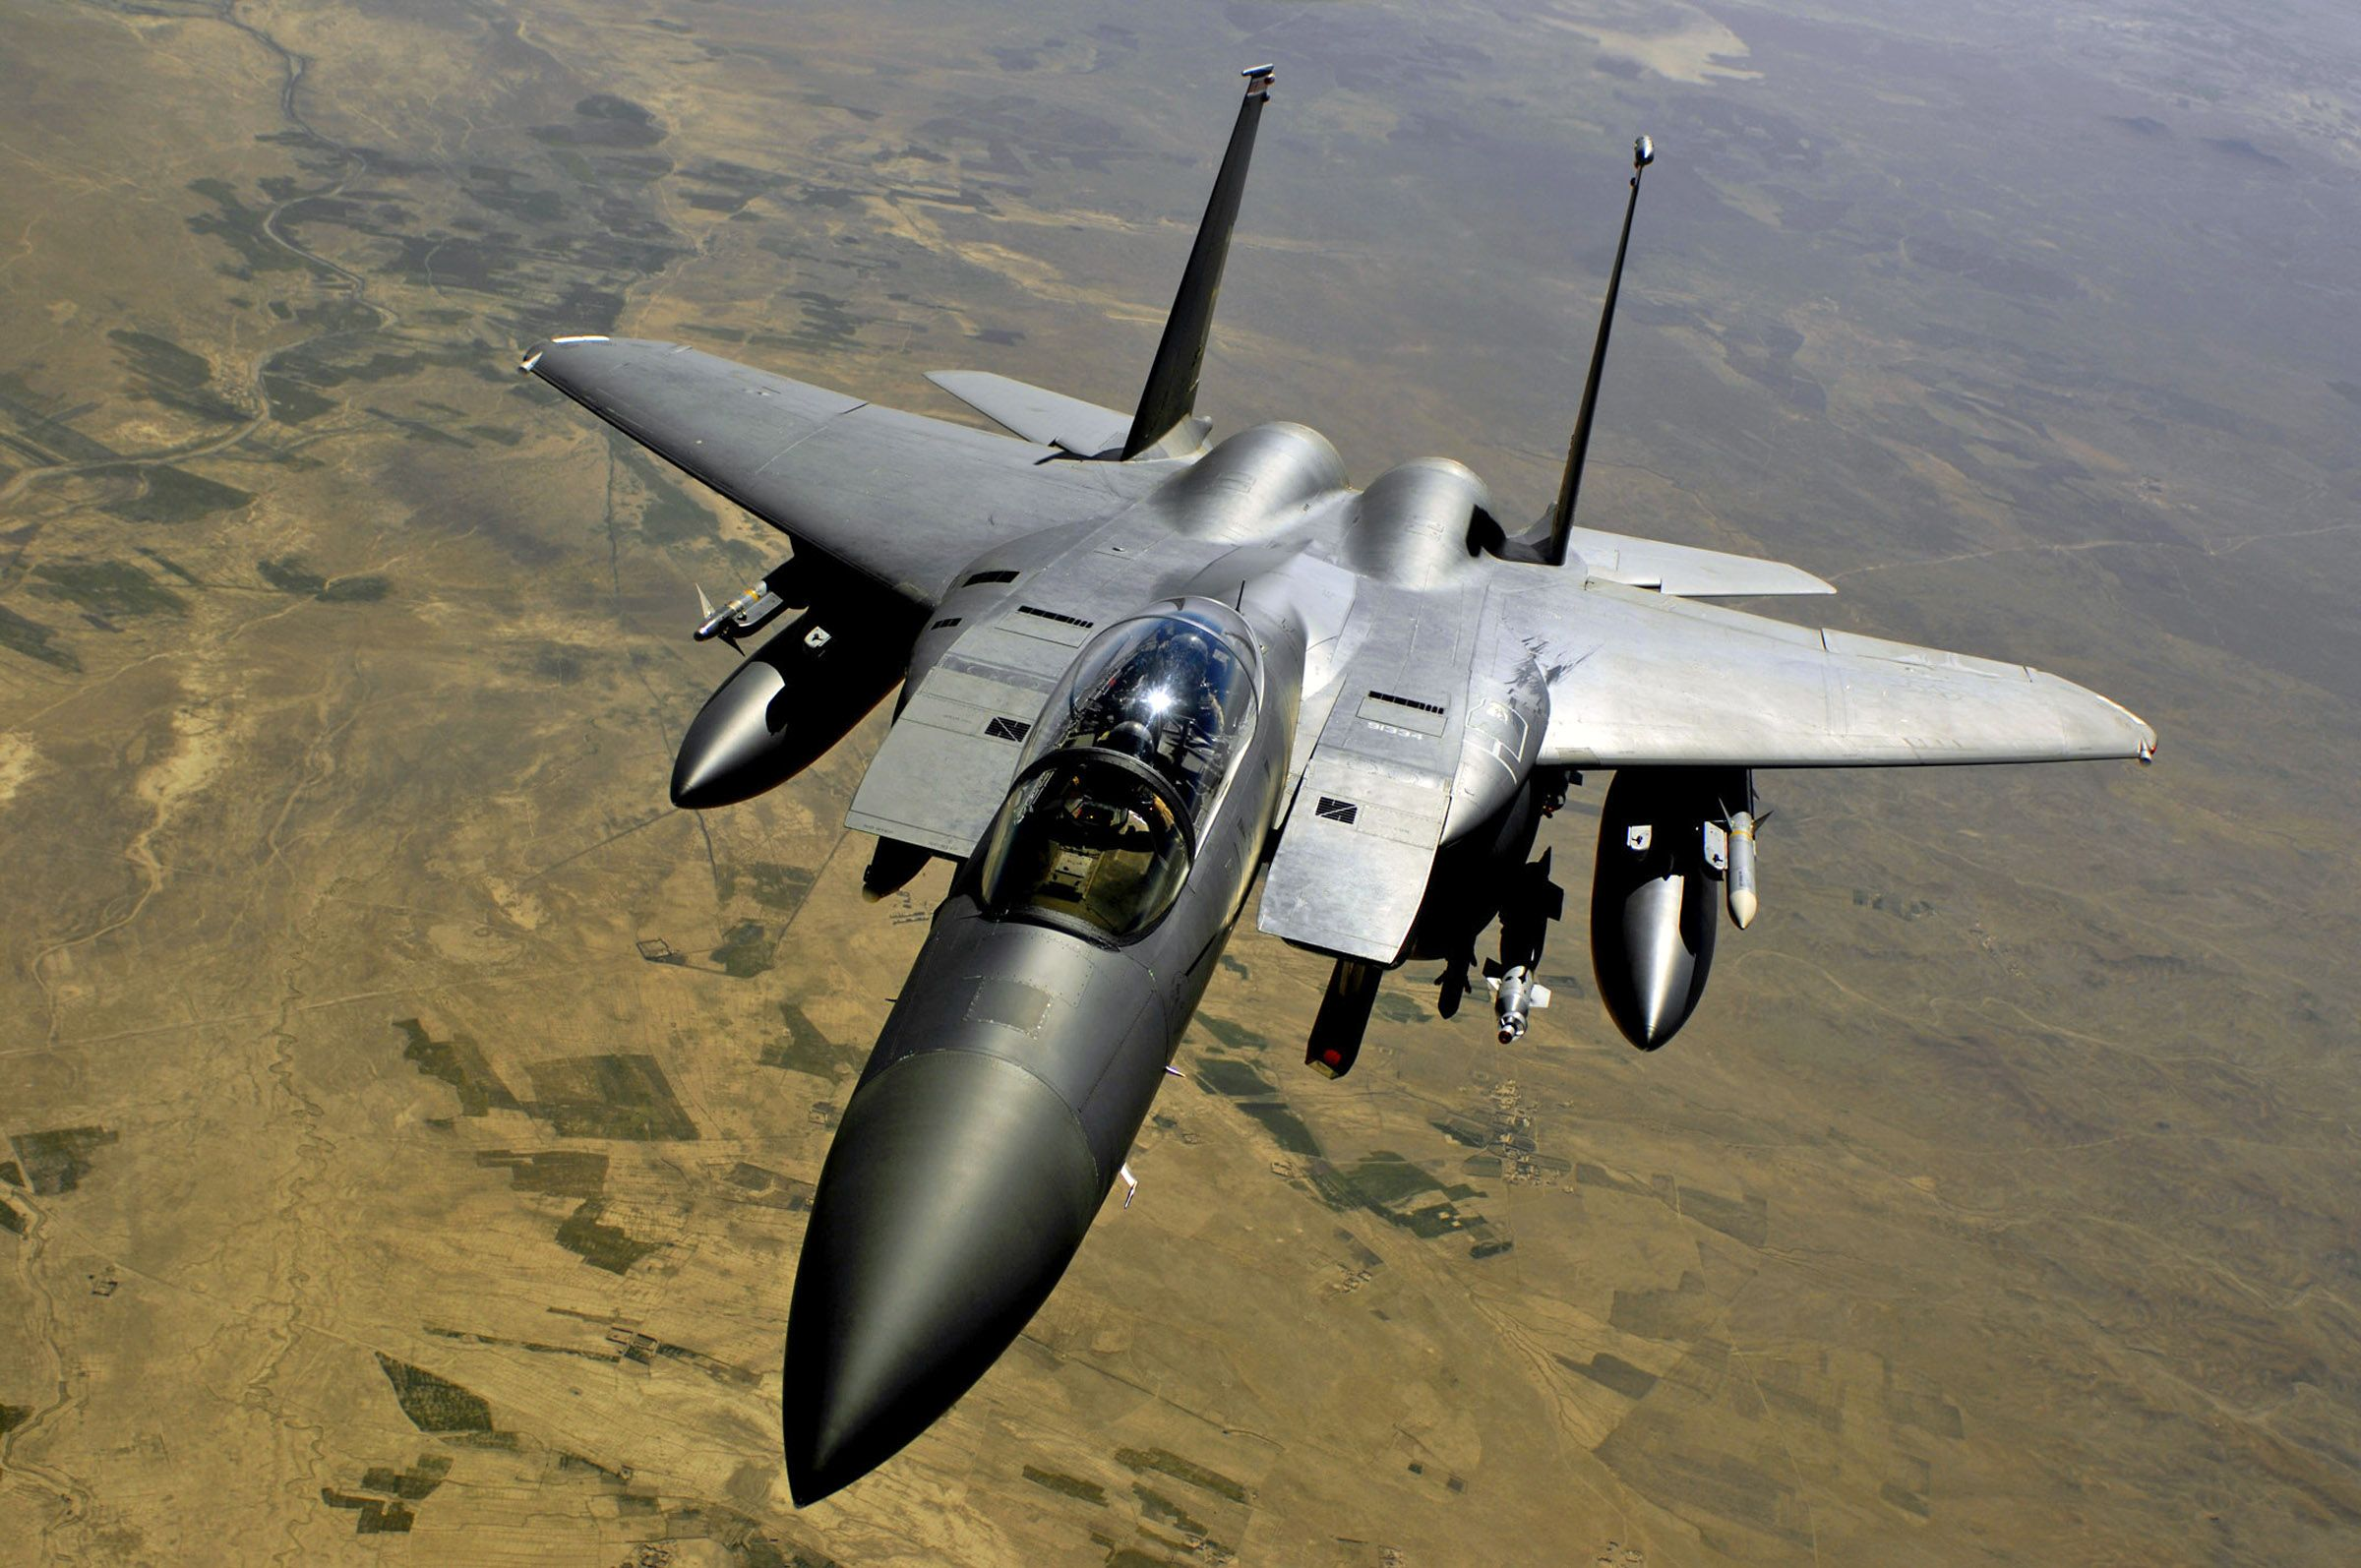 Image Detail For Top Ten Us Jet Fighters Help Us Salute Our Veterans By Supporting Their Businesses At Www Veteransdirectory Com Post Fighter Jets Aircraft